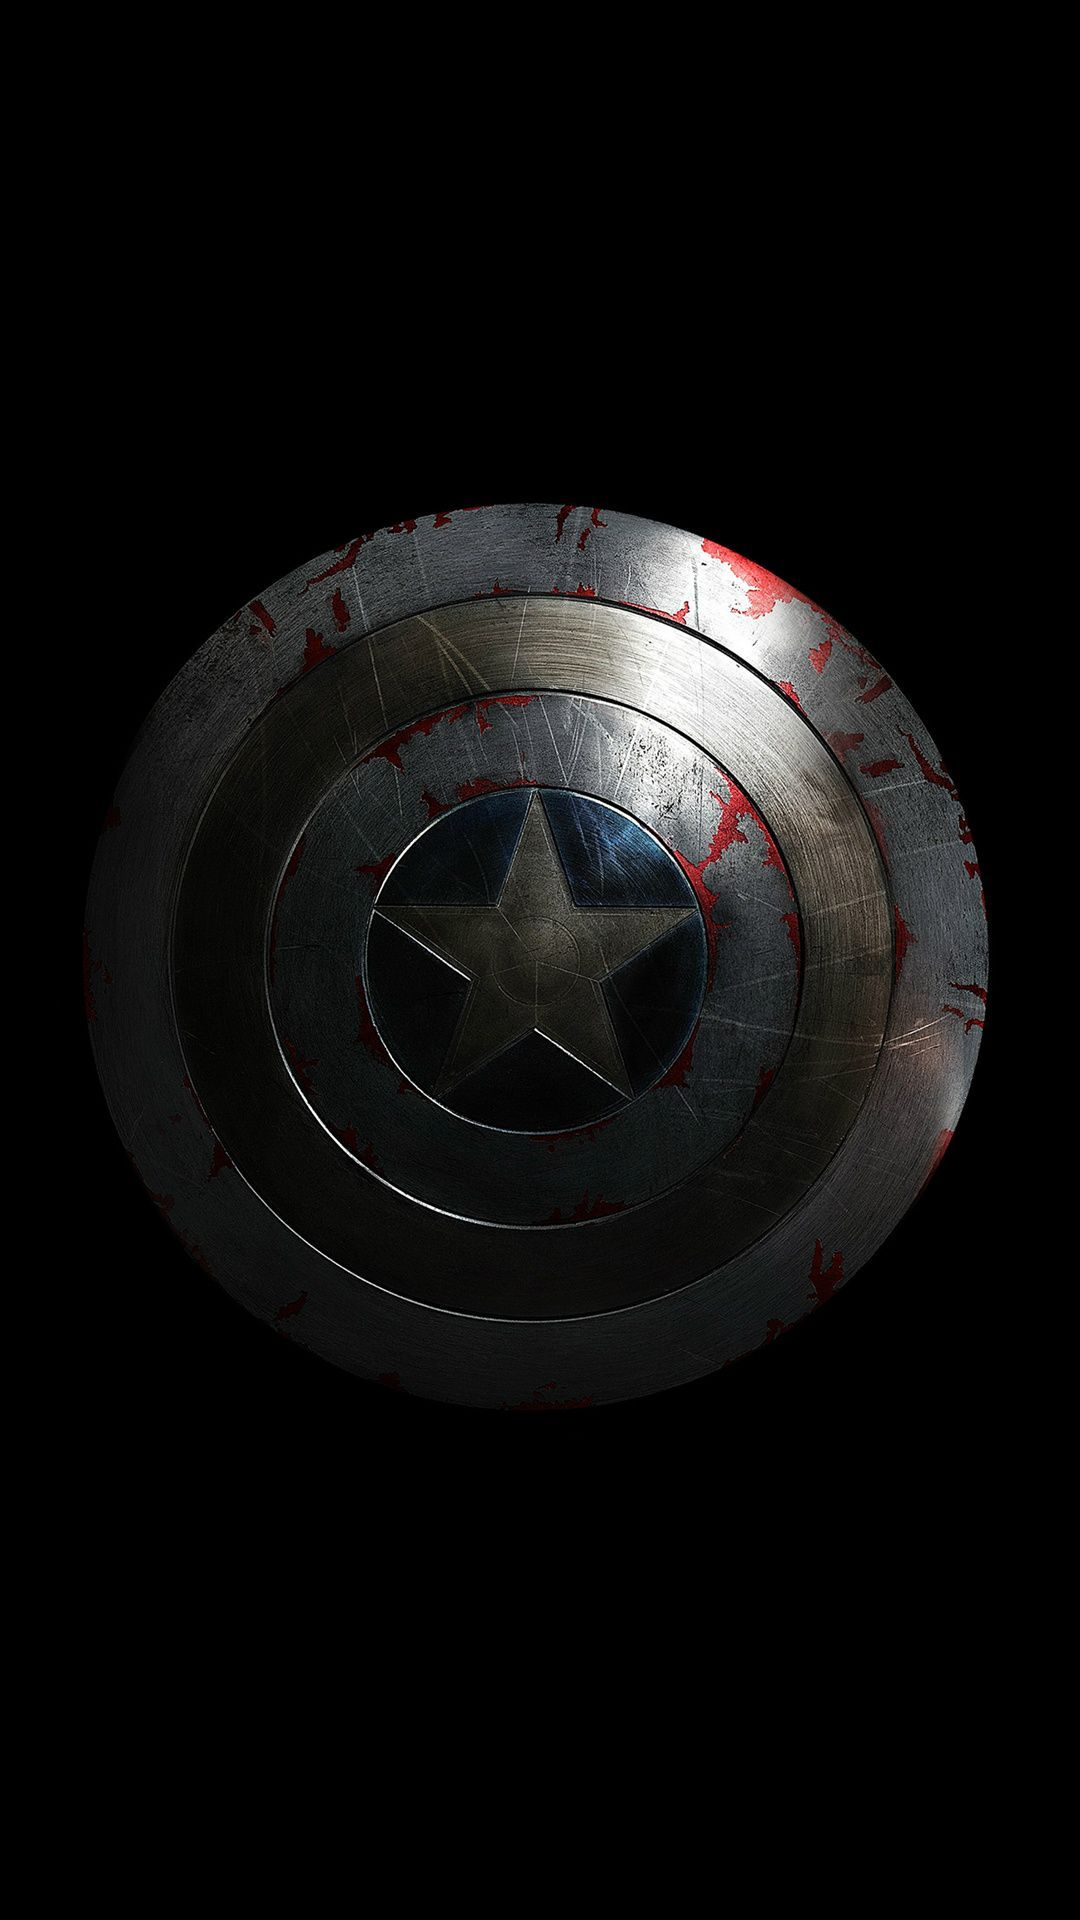 Marvel Captain America Iphone Wallpapers Top Free Marvel